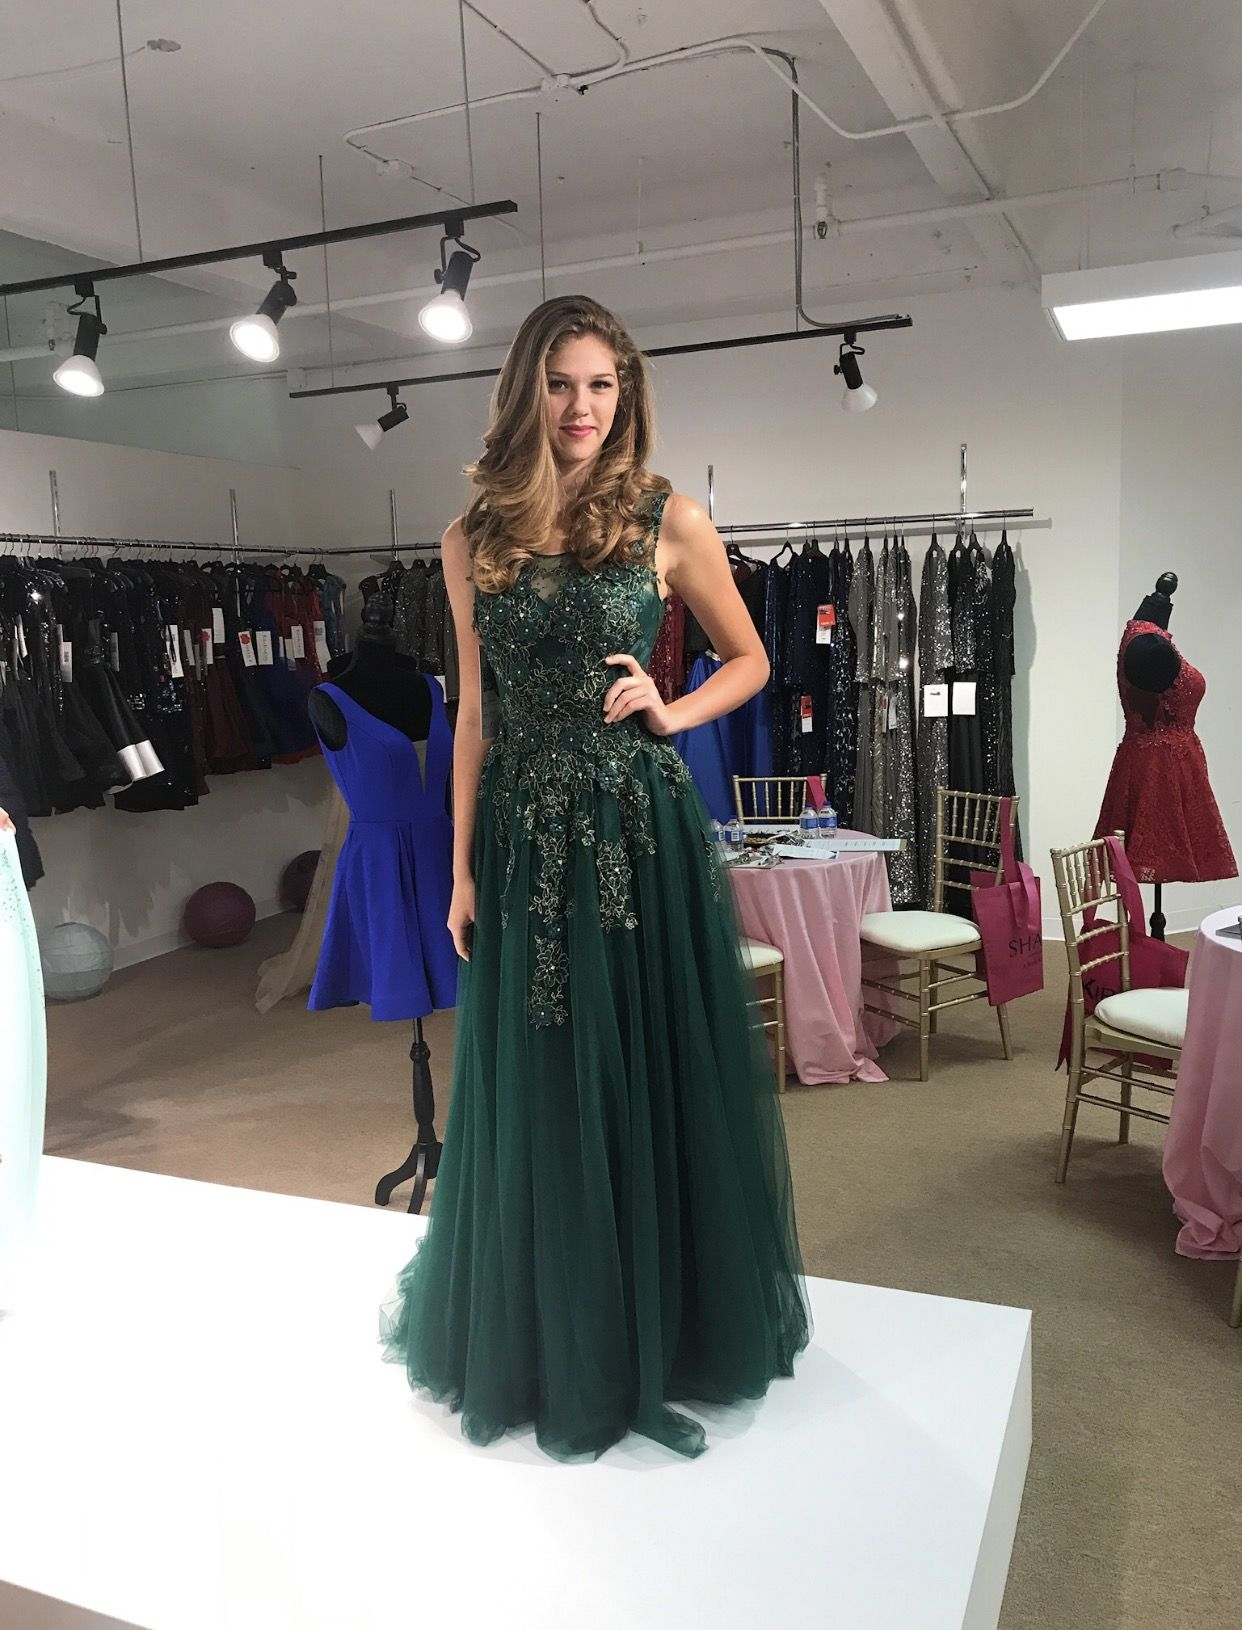 One Of Our Favorite 2018 Looks From The Prom Market In Atlanta How Whimsical And Magical Is This Prom Trends Designer Prom Dresses Evening Dresses